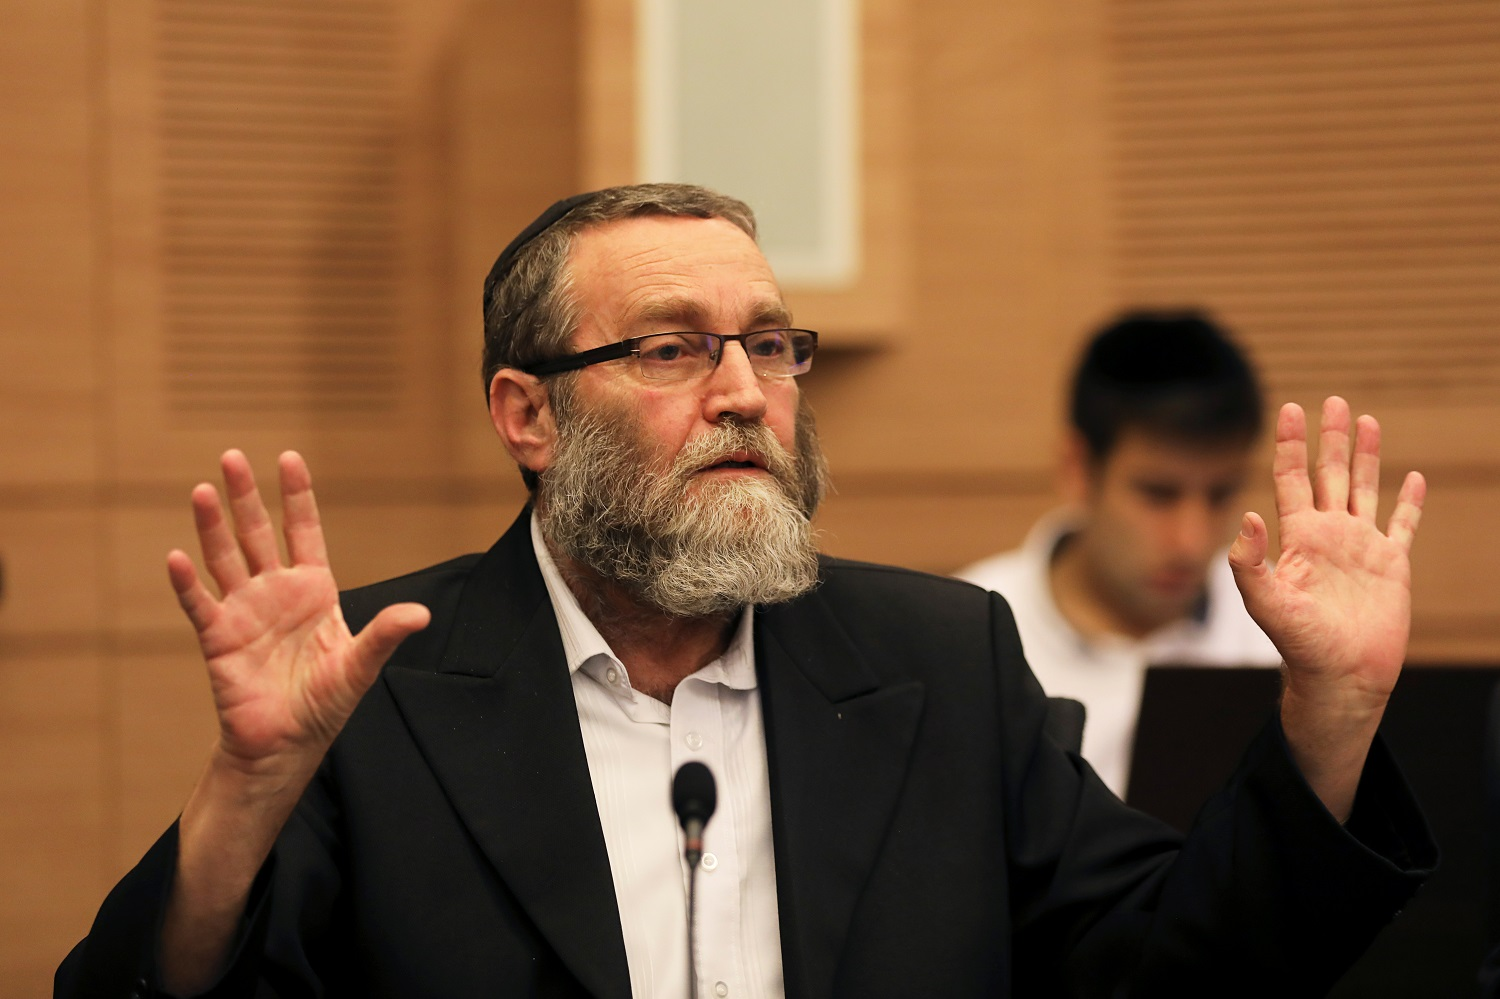 Moshe Gafni, pictured here in 2017, has been a member of the Knesset for more than 30 years (Reuters)